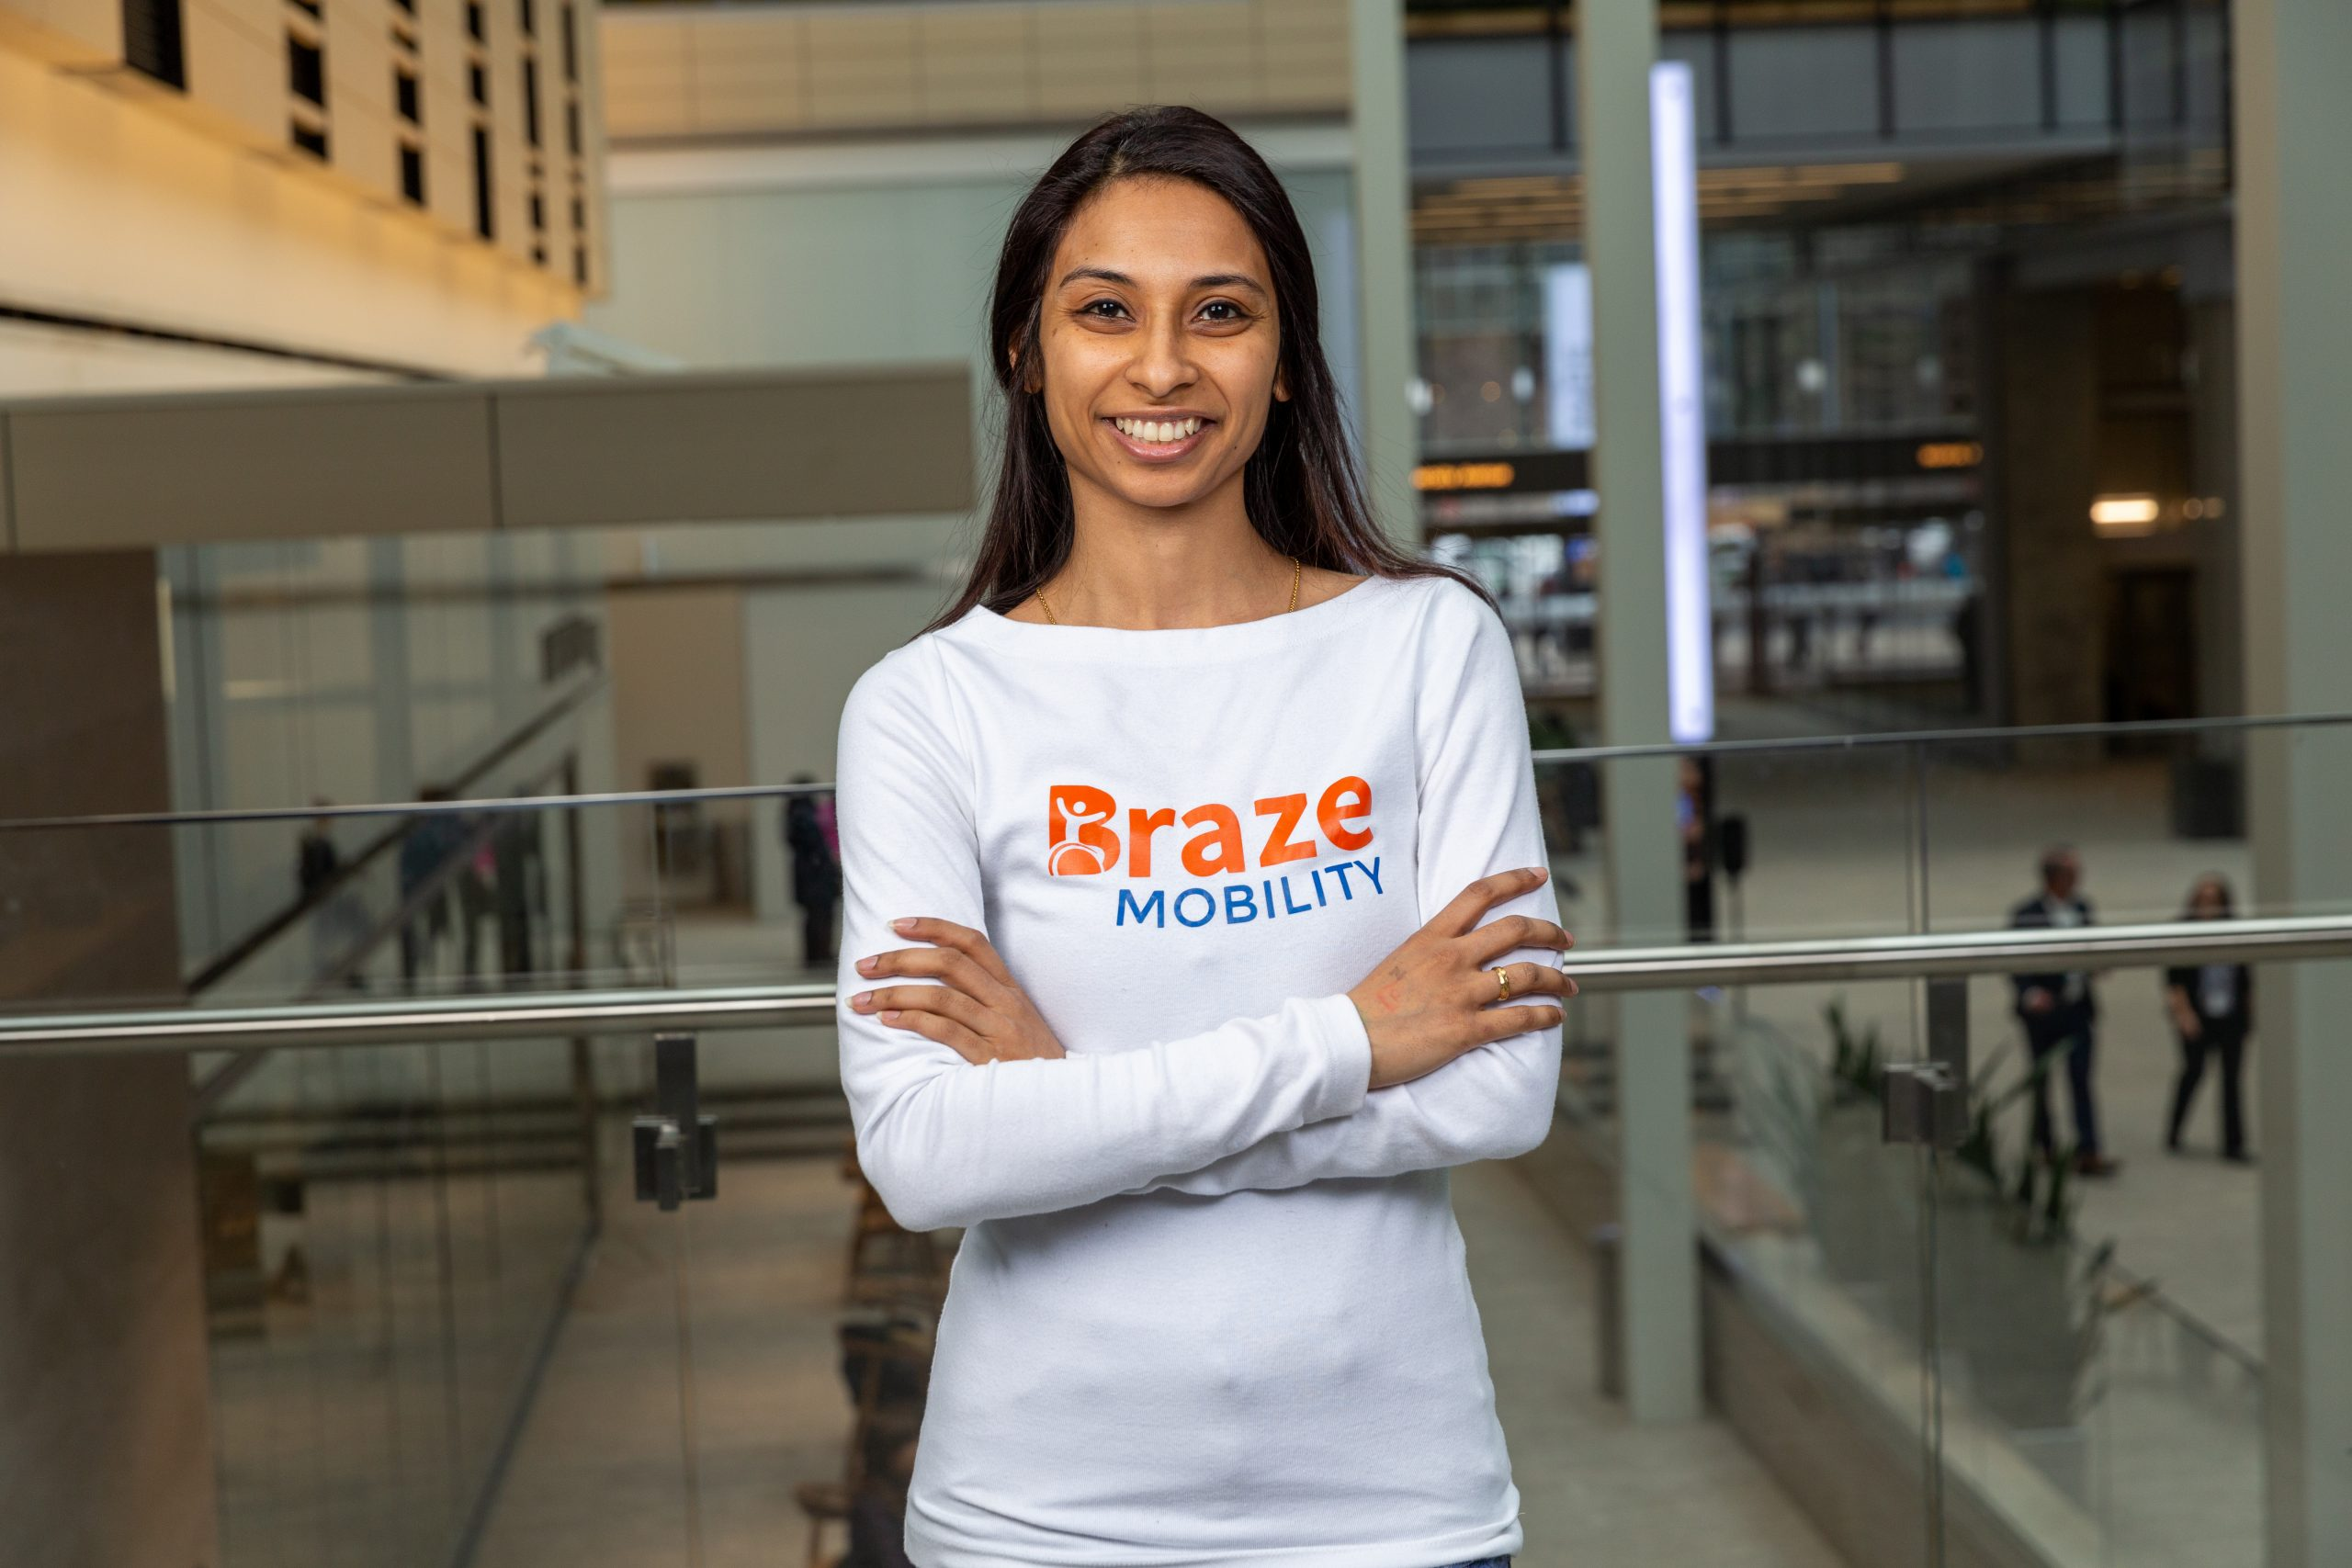 Photo of Pooja smiling with arms crossed wearing a white Braze Mobility long sleeved shirt